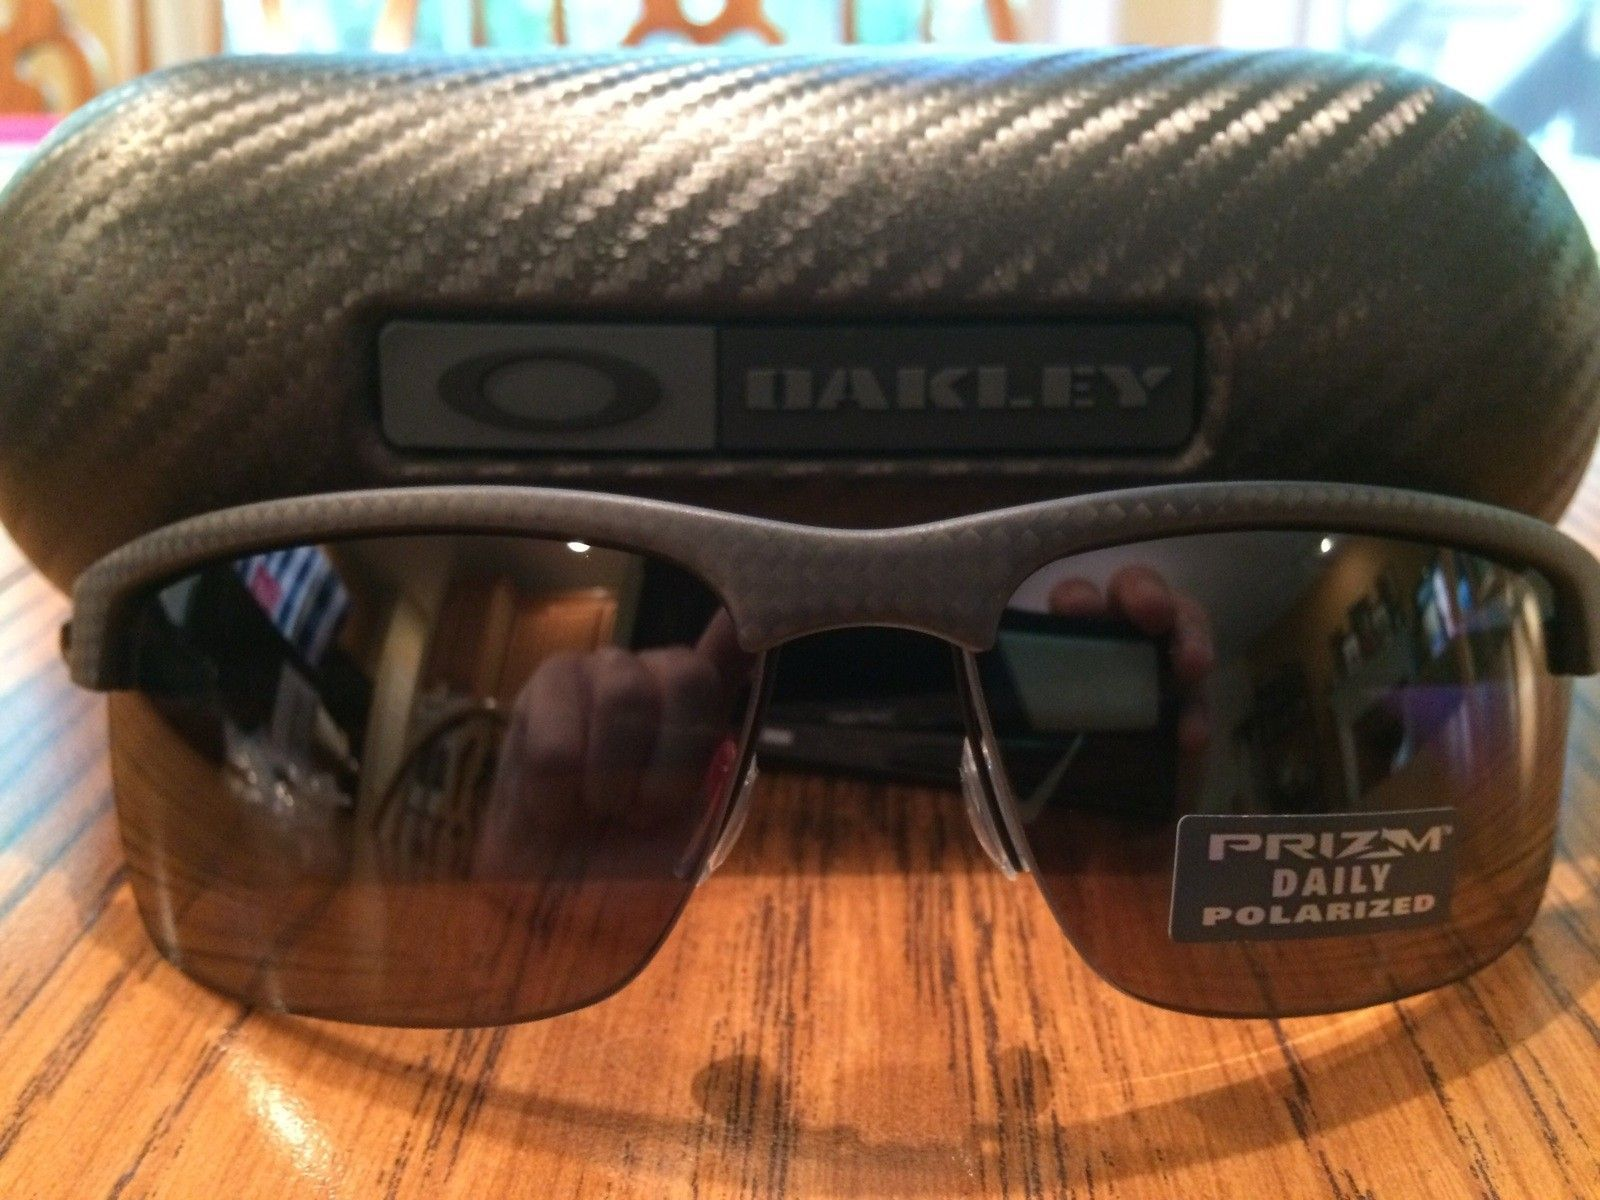 Carbon blade matte carbon with prize daily polarized BNIB and complete - image.jpg